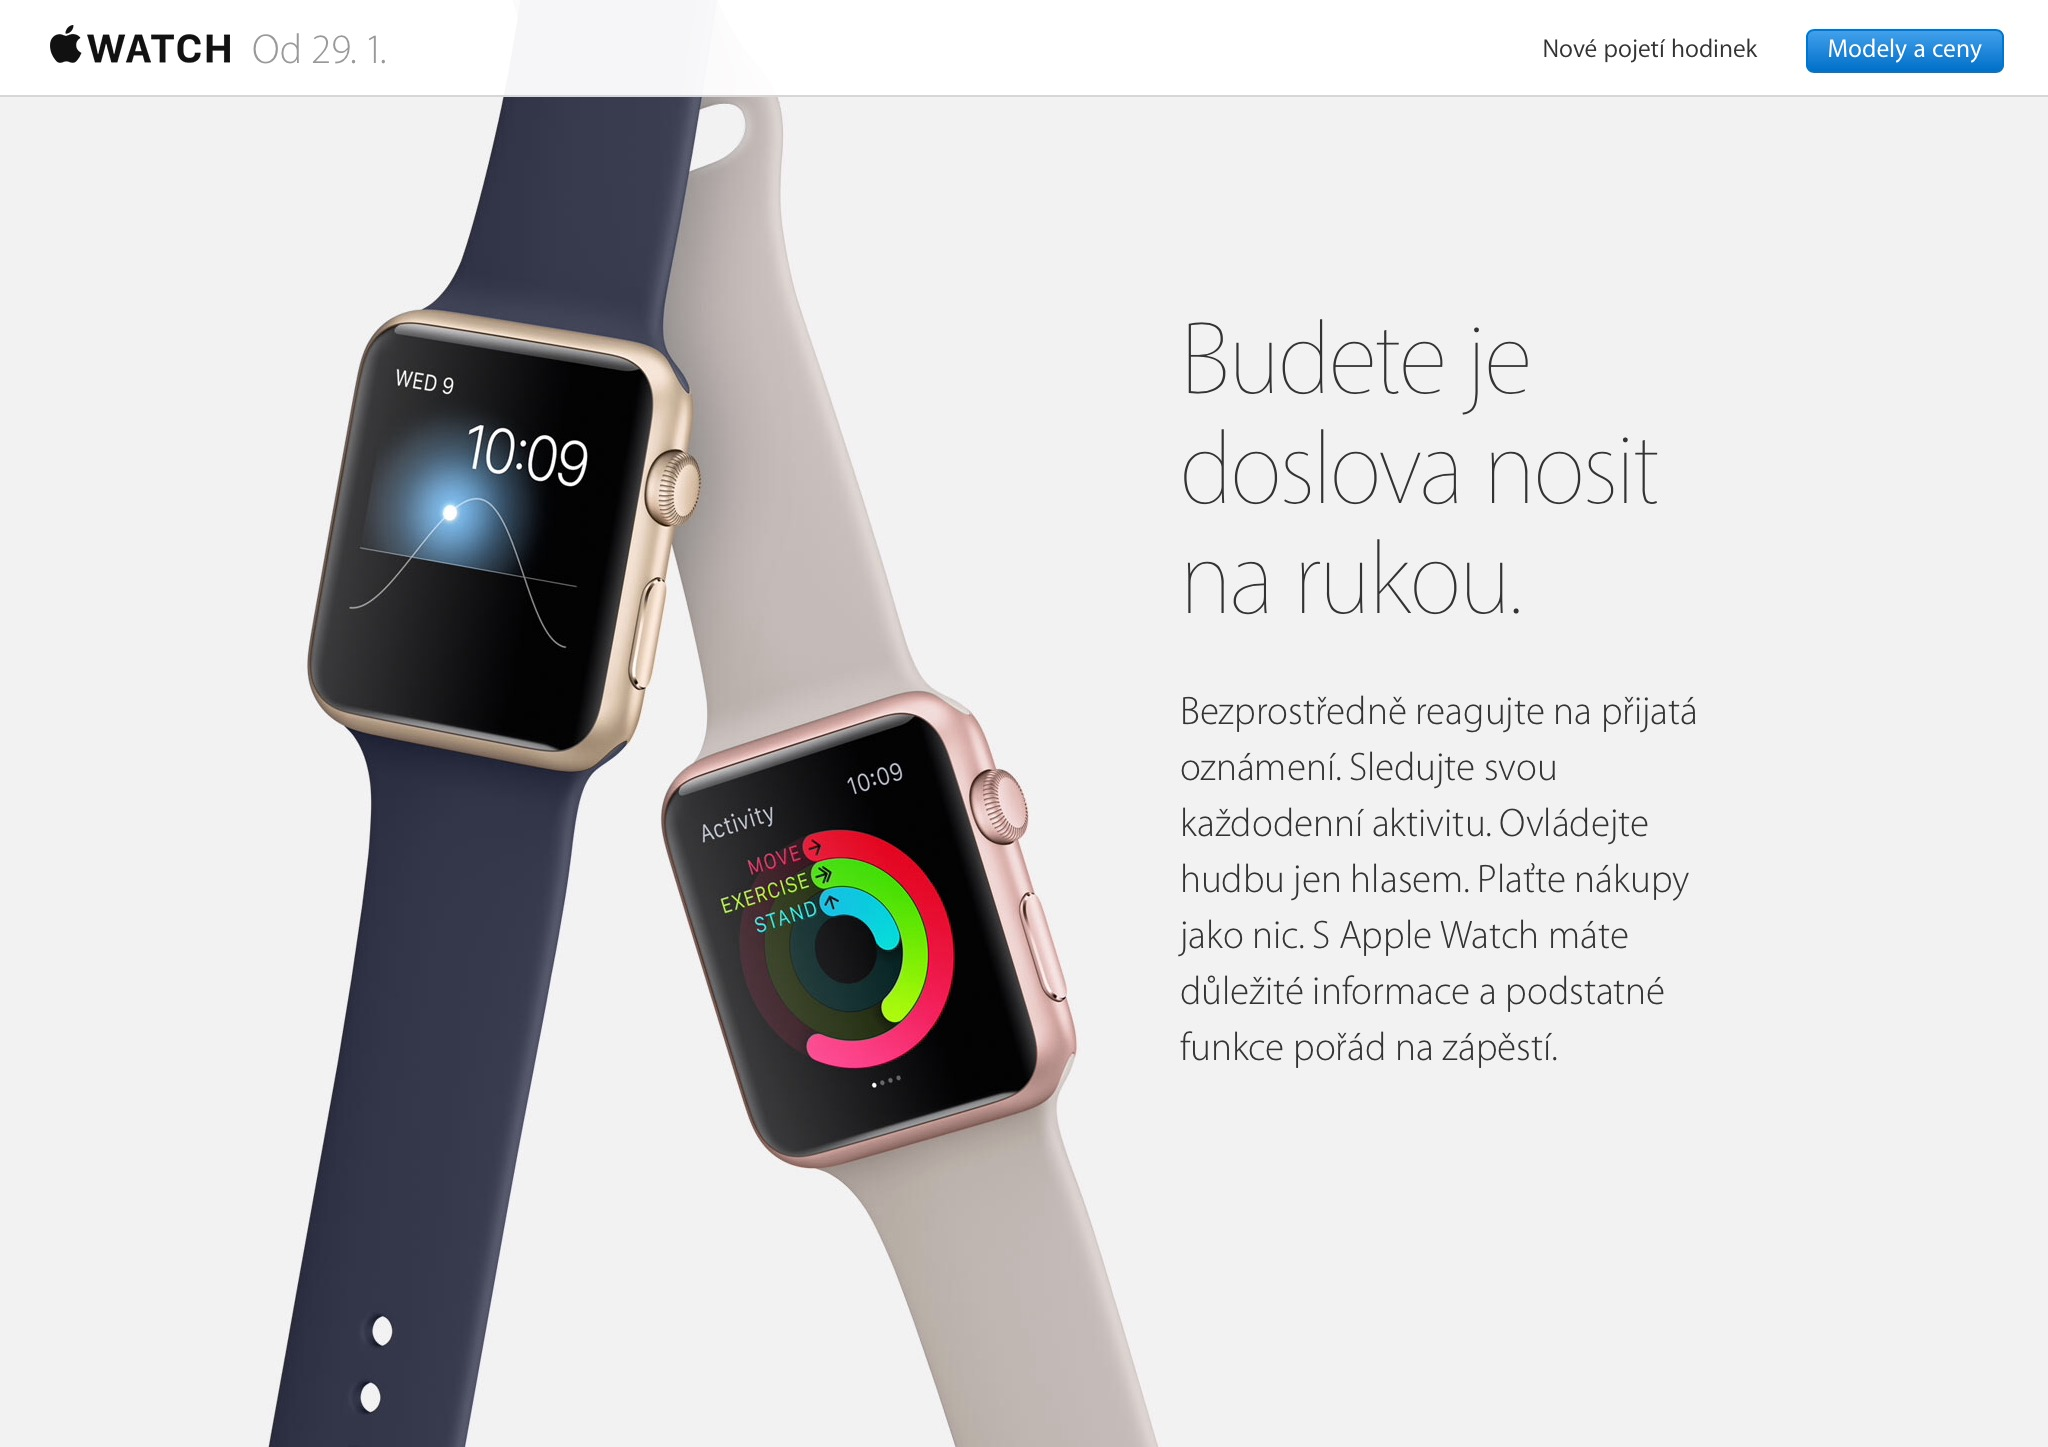 Apple Watch na českom Online Apple Store